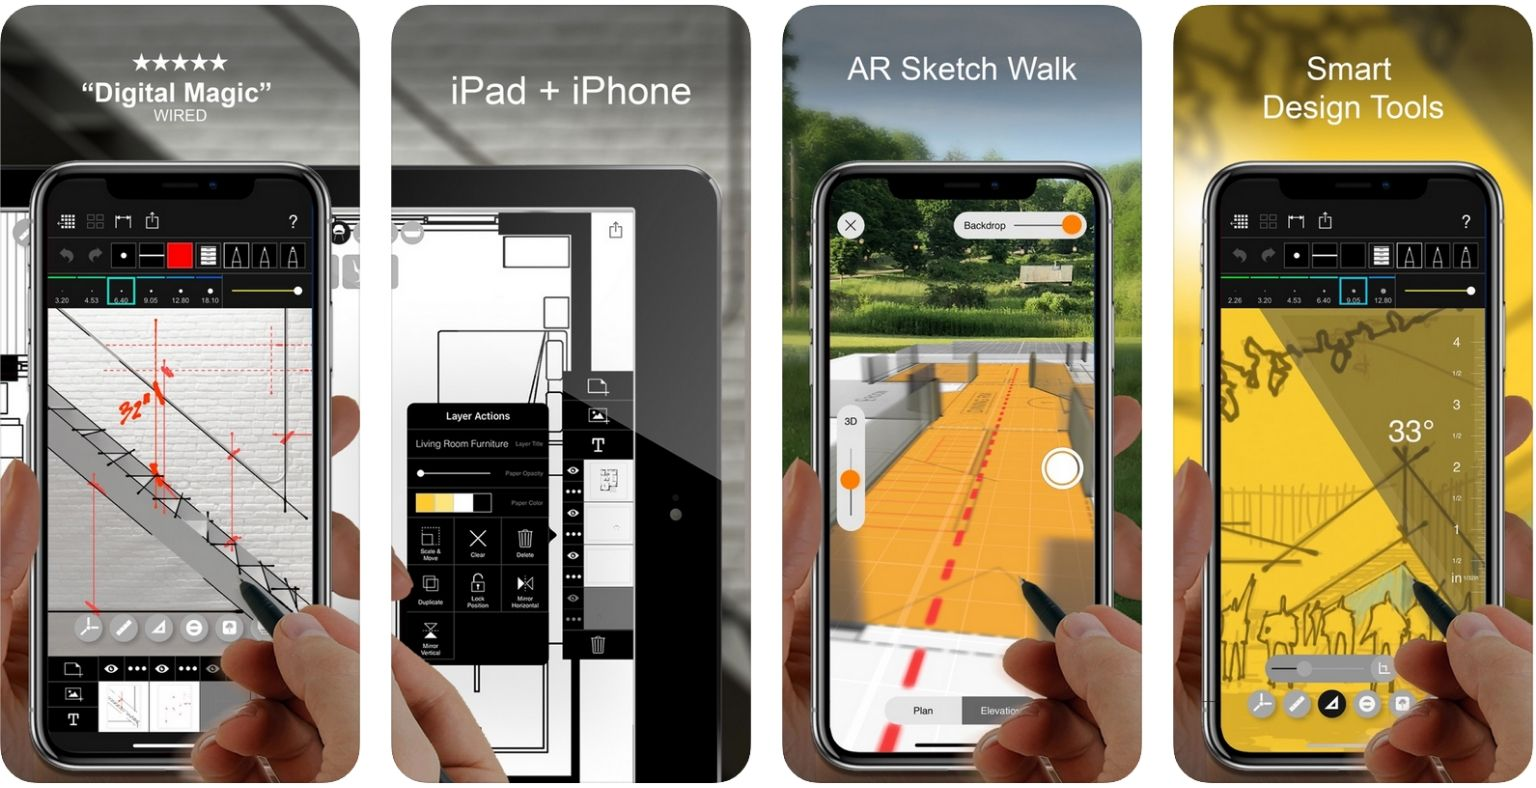 Best apps for Architects - Morpholio Trace - iPhone screenshot | ArchiSnapper Blog